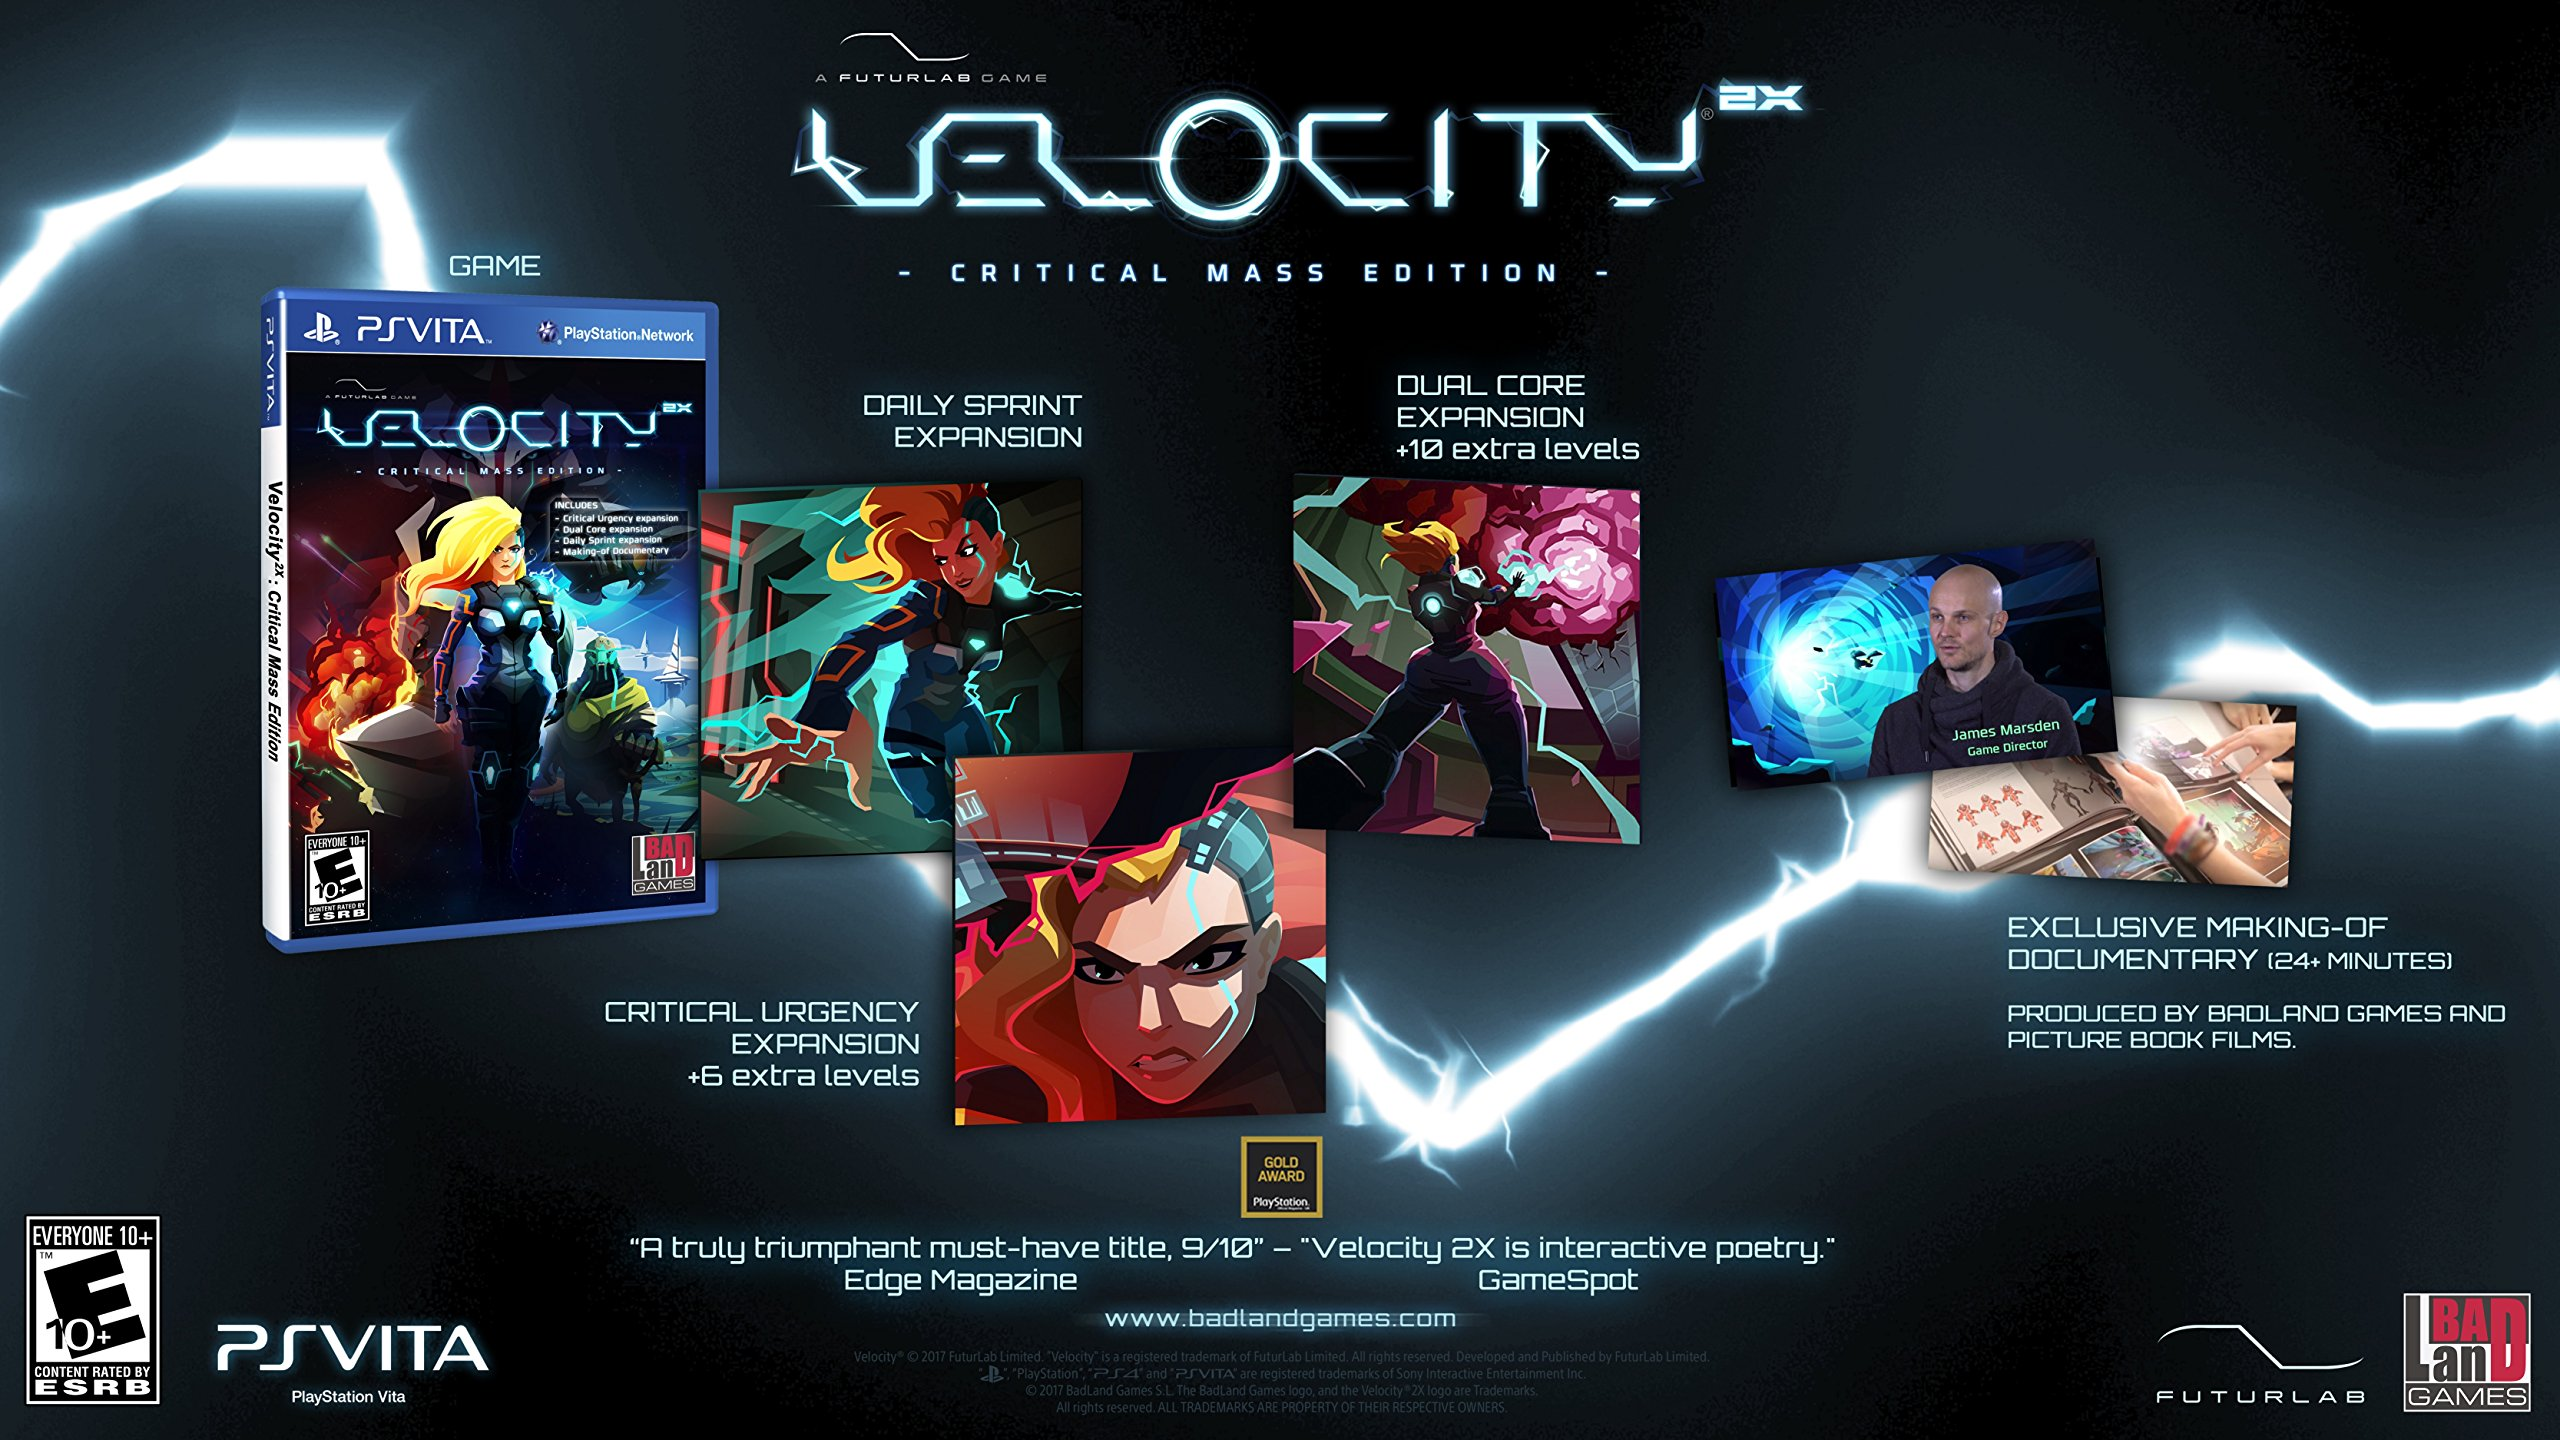 Velocity 2X: Critical Mass Edition - PlayStation Vita